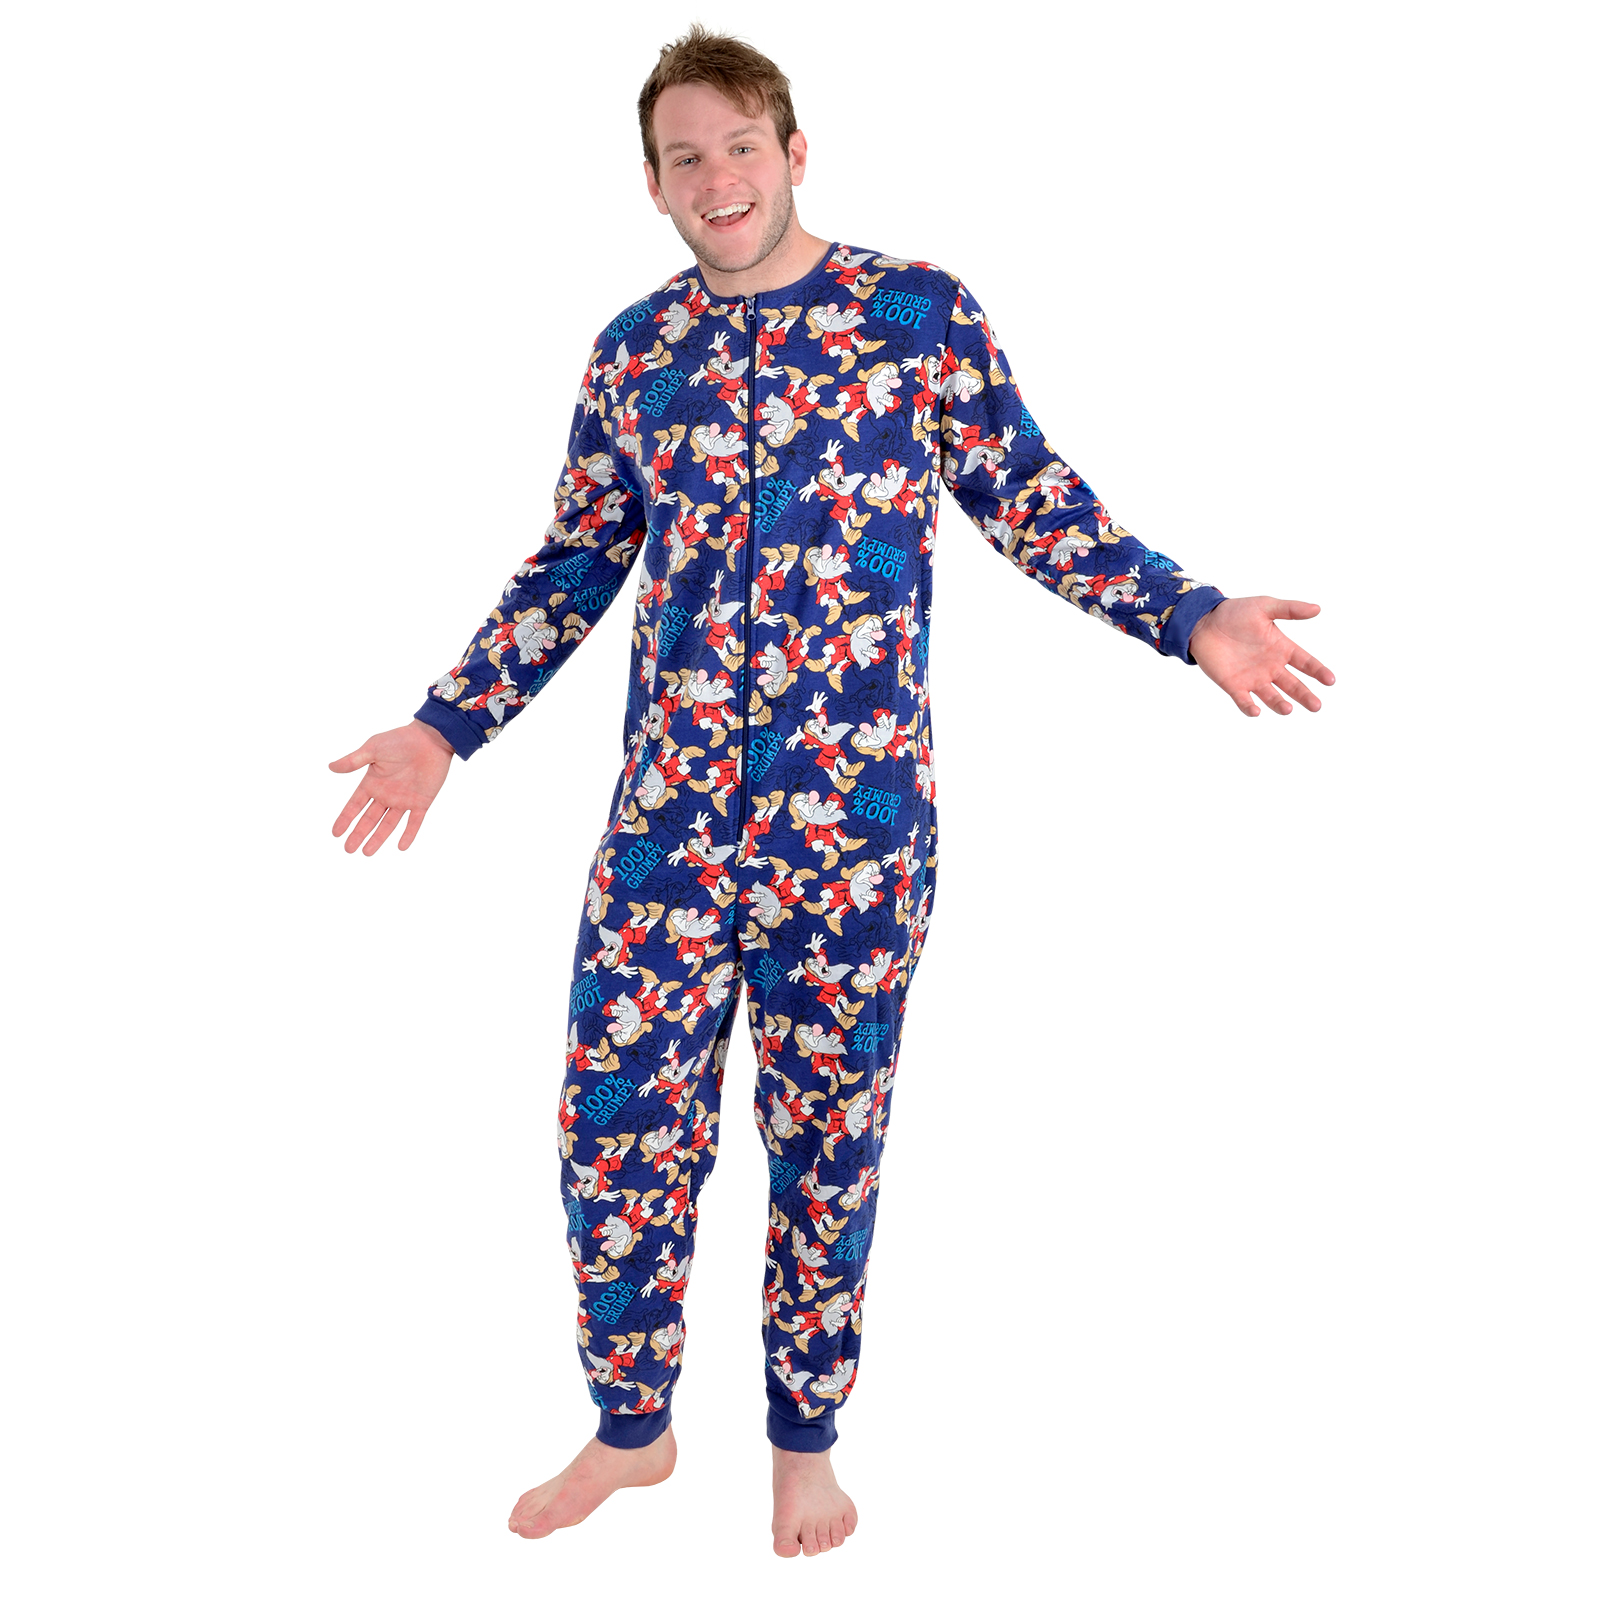 Adult onesie pajamas from $ Over 40 fun styles in stock! Free 3-day shipping on orders over $ but men can wear them too! The model pictured below is 5' 9